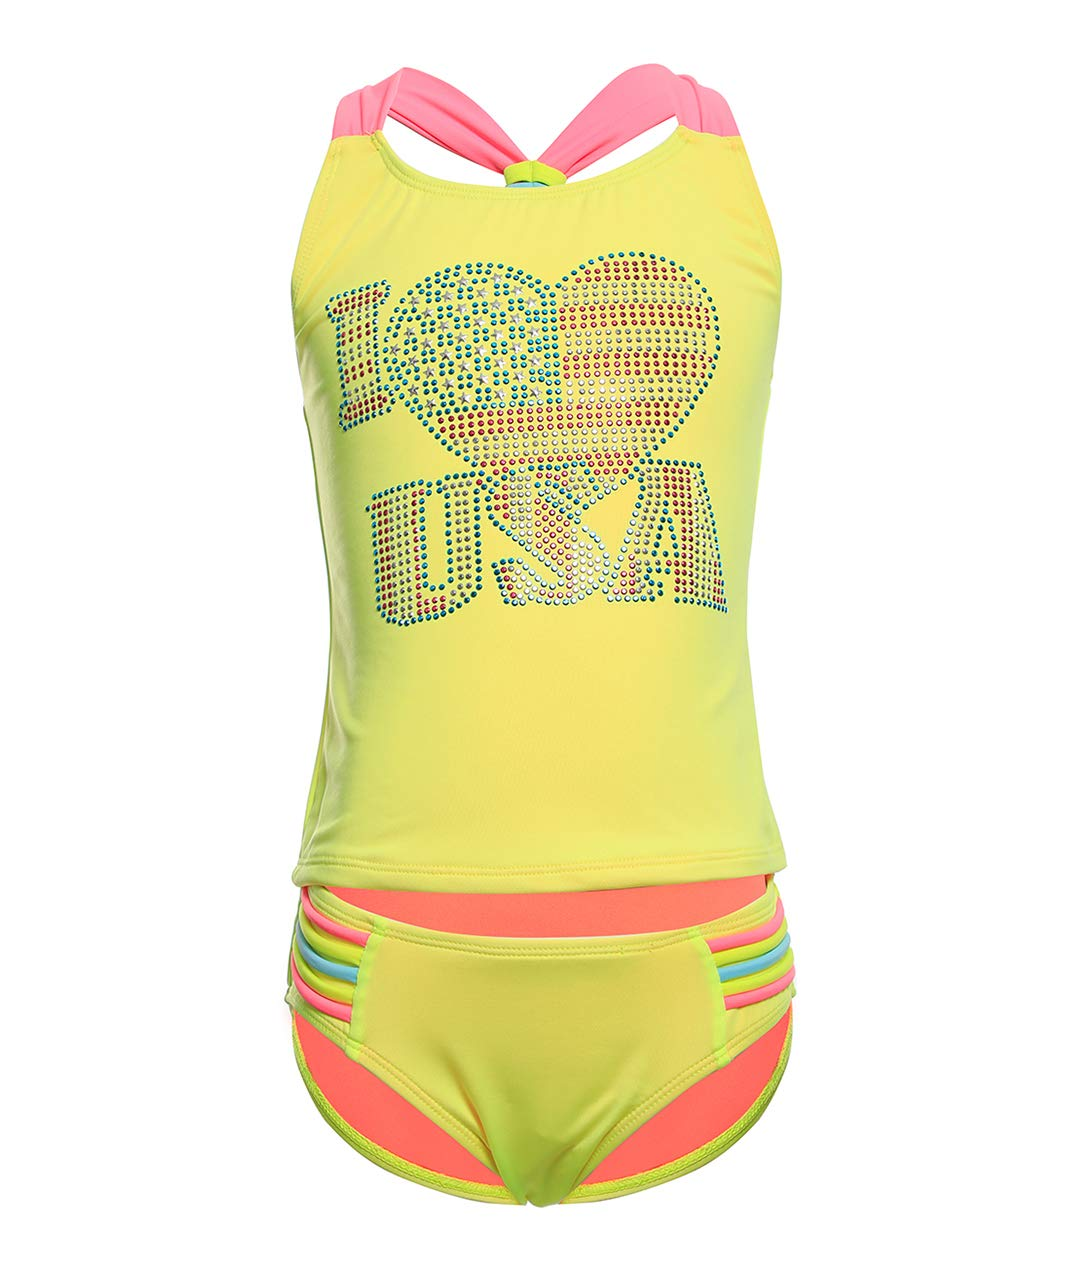 BELLOO Girls Two Pieces Tankini Swimsuit, Cross Back Bathing Suit for Girl Yellow Size 4-5